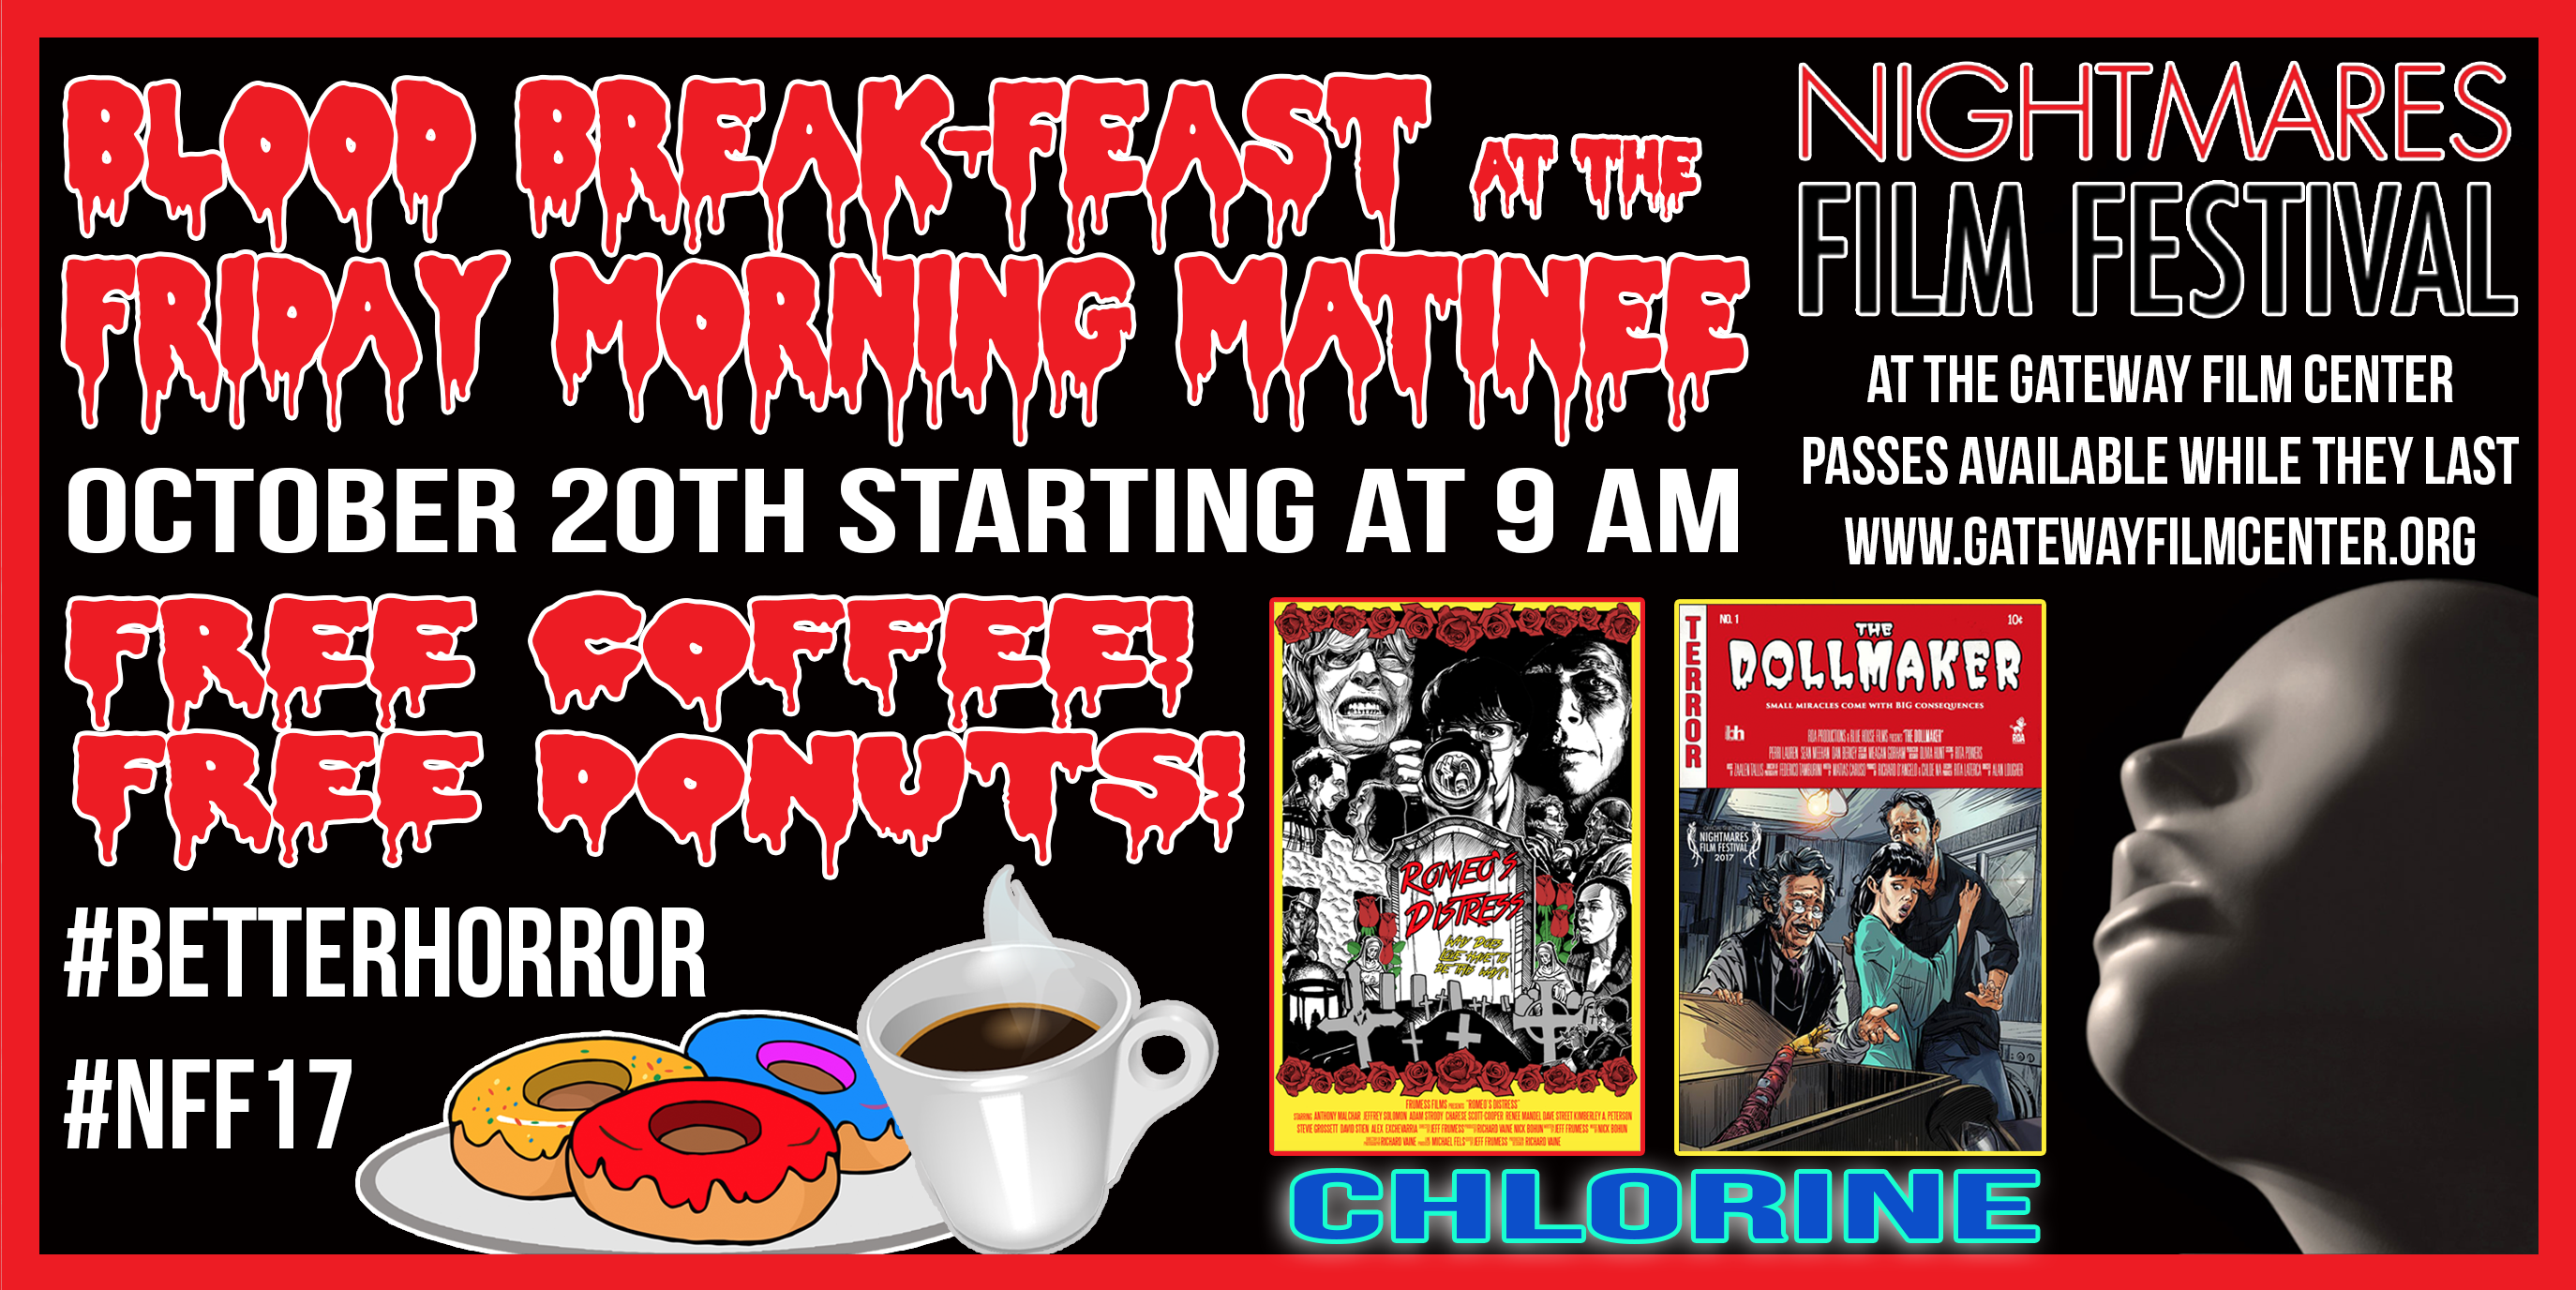 2017 NIGHTMARES FILM FESTIVAL LINEUP ANNOUNCED FOR MORNING MATINEE